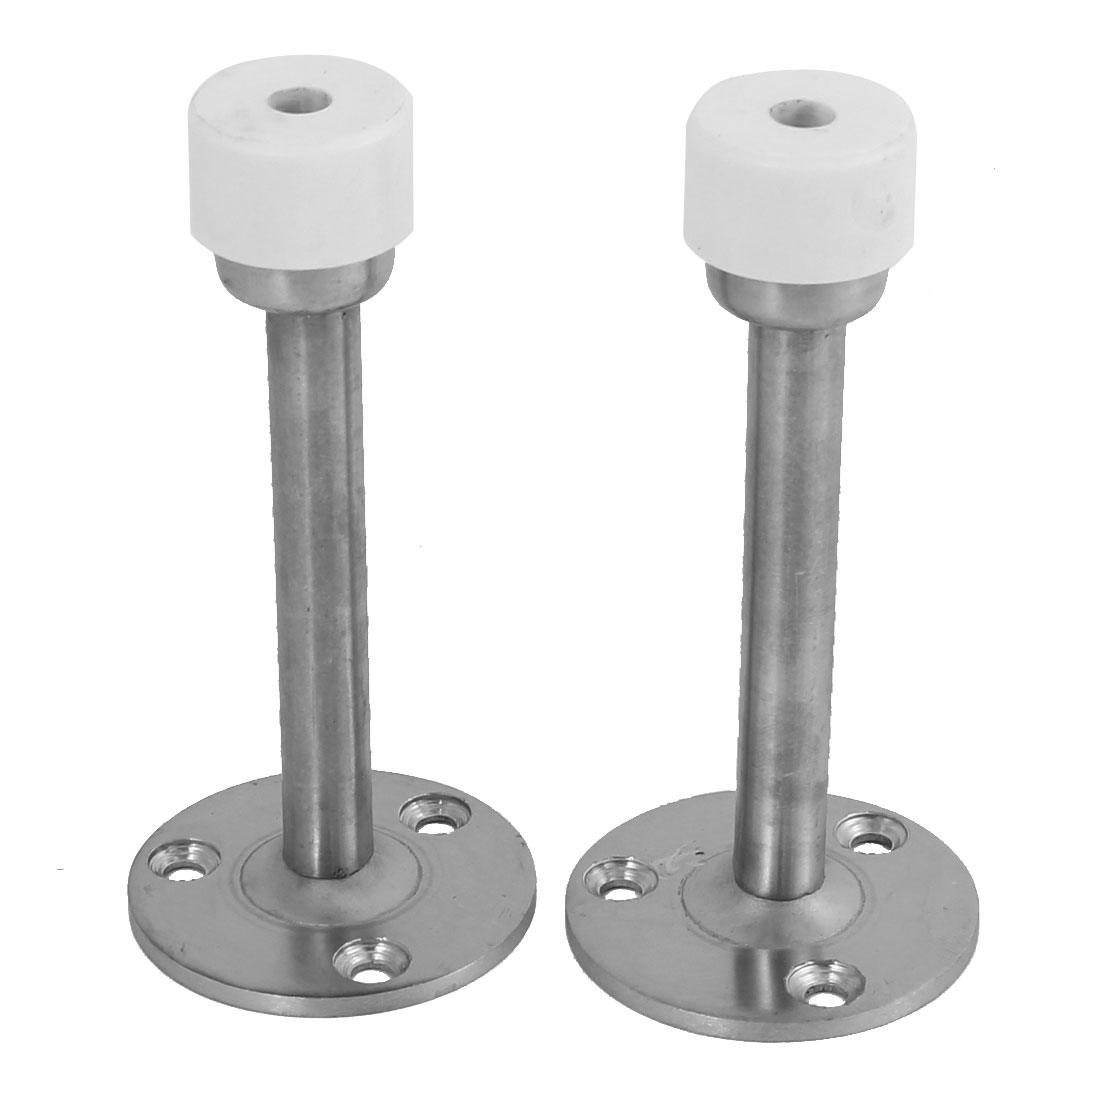 4-inch Long Metal Floor Mounted Door Stop Stopper Bumper 2pcs